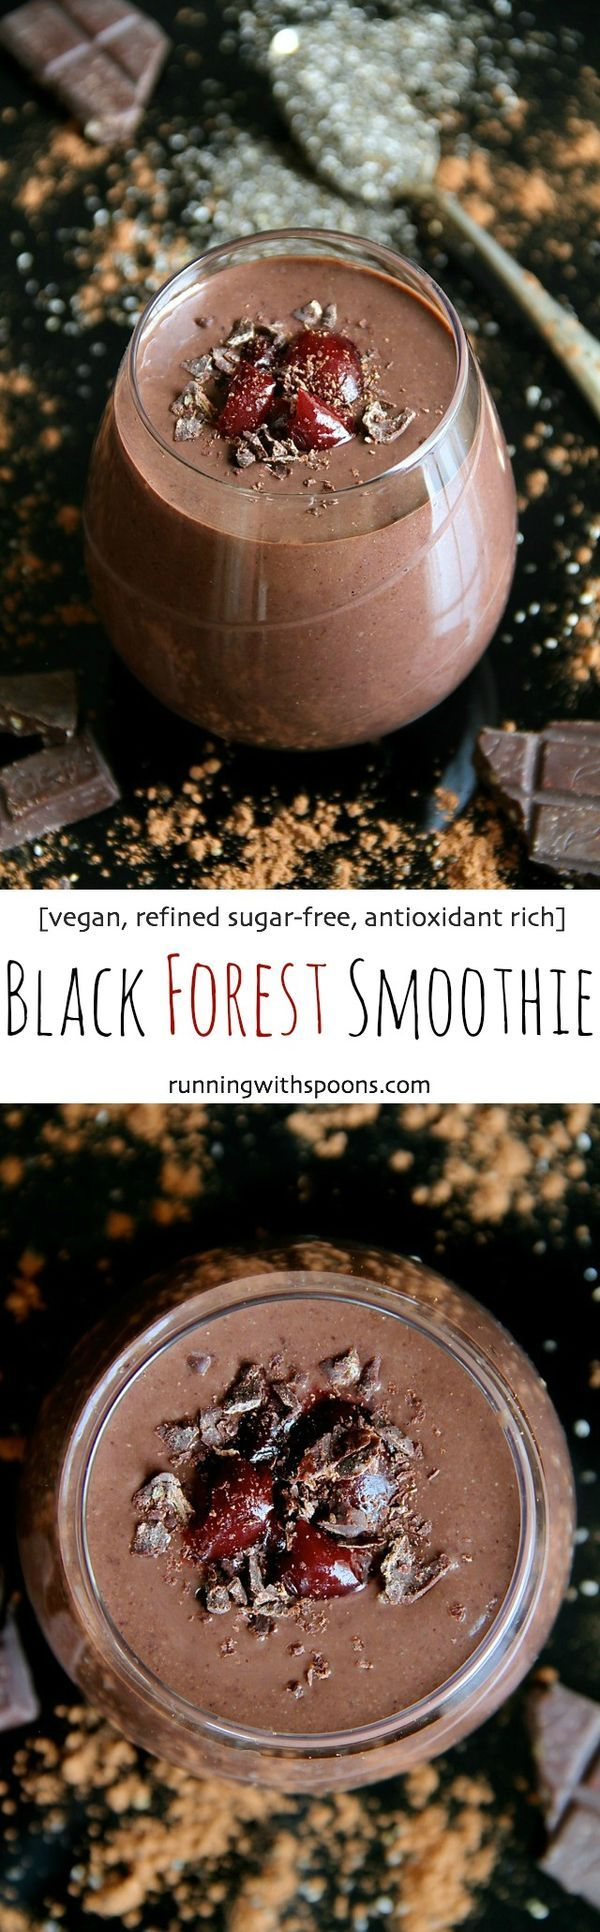 Black Forest Smoothie -- naturally sweet and loaded with antioxidants. You'd never believe it's super healthy! || runningwithspoons.com #vegan #healthy